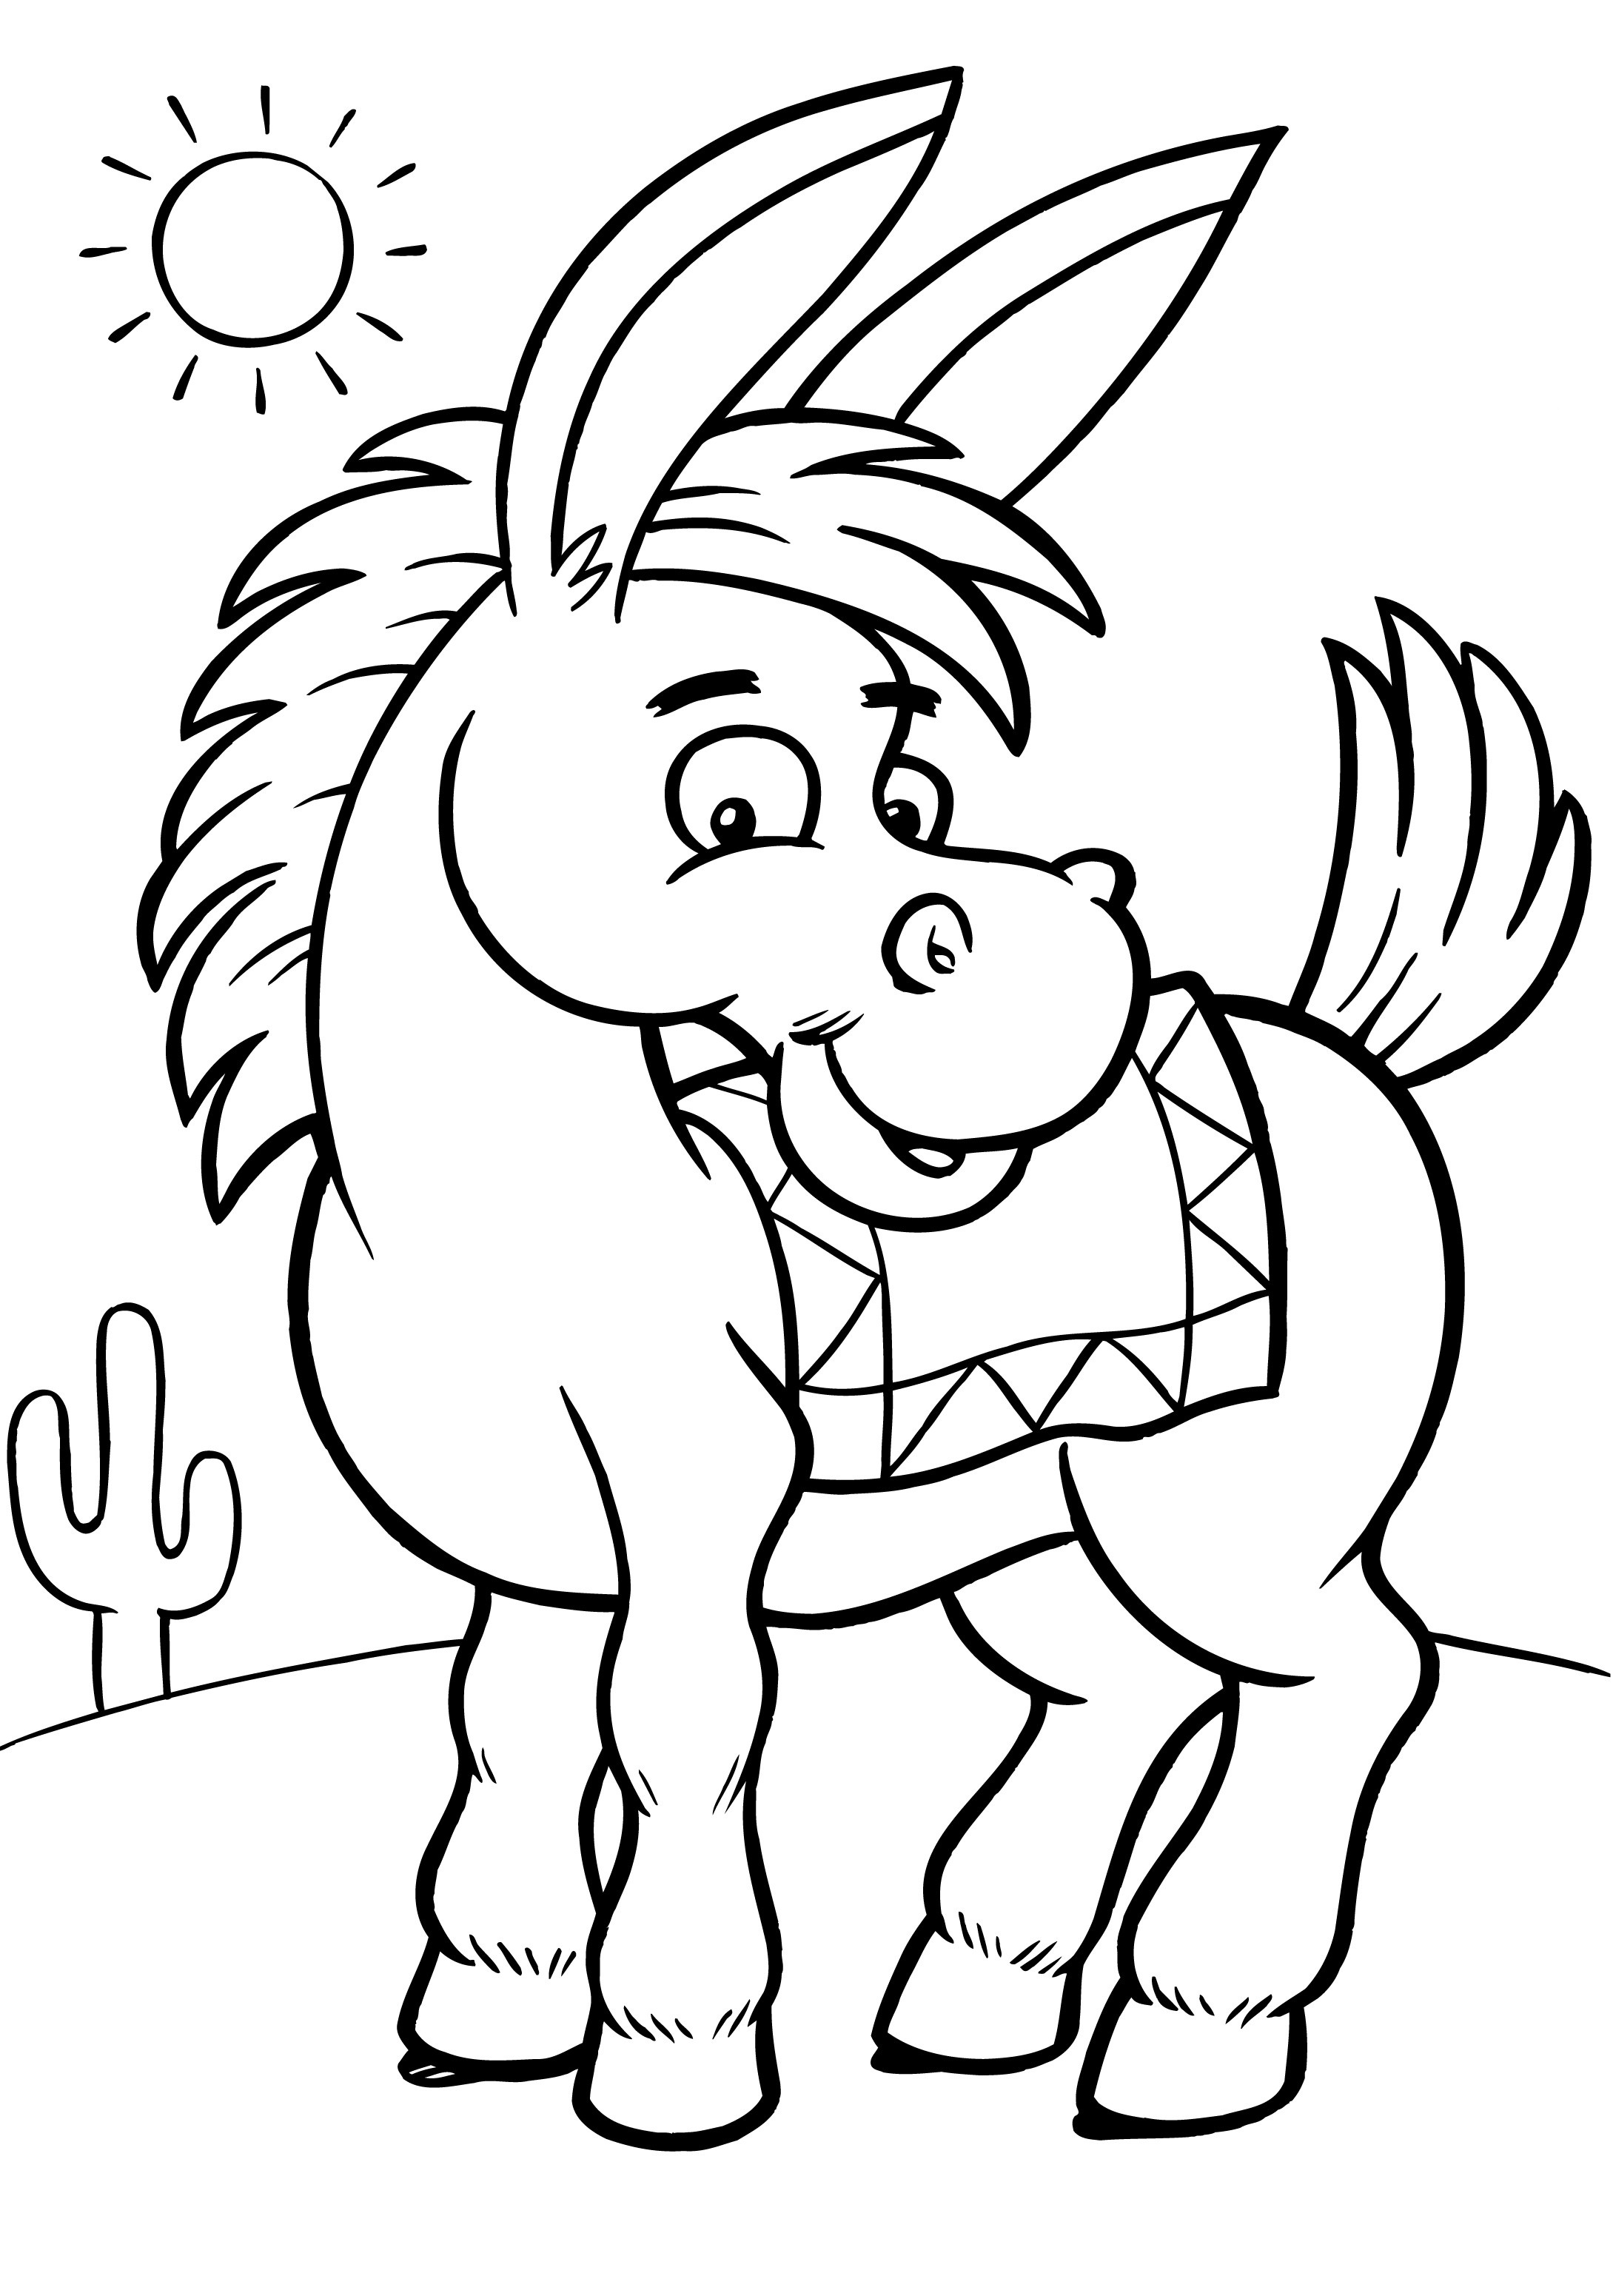 printable coloring book pages zebra coloring pages free printable kids coloring pages pages printable coloring book